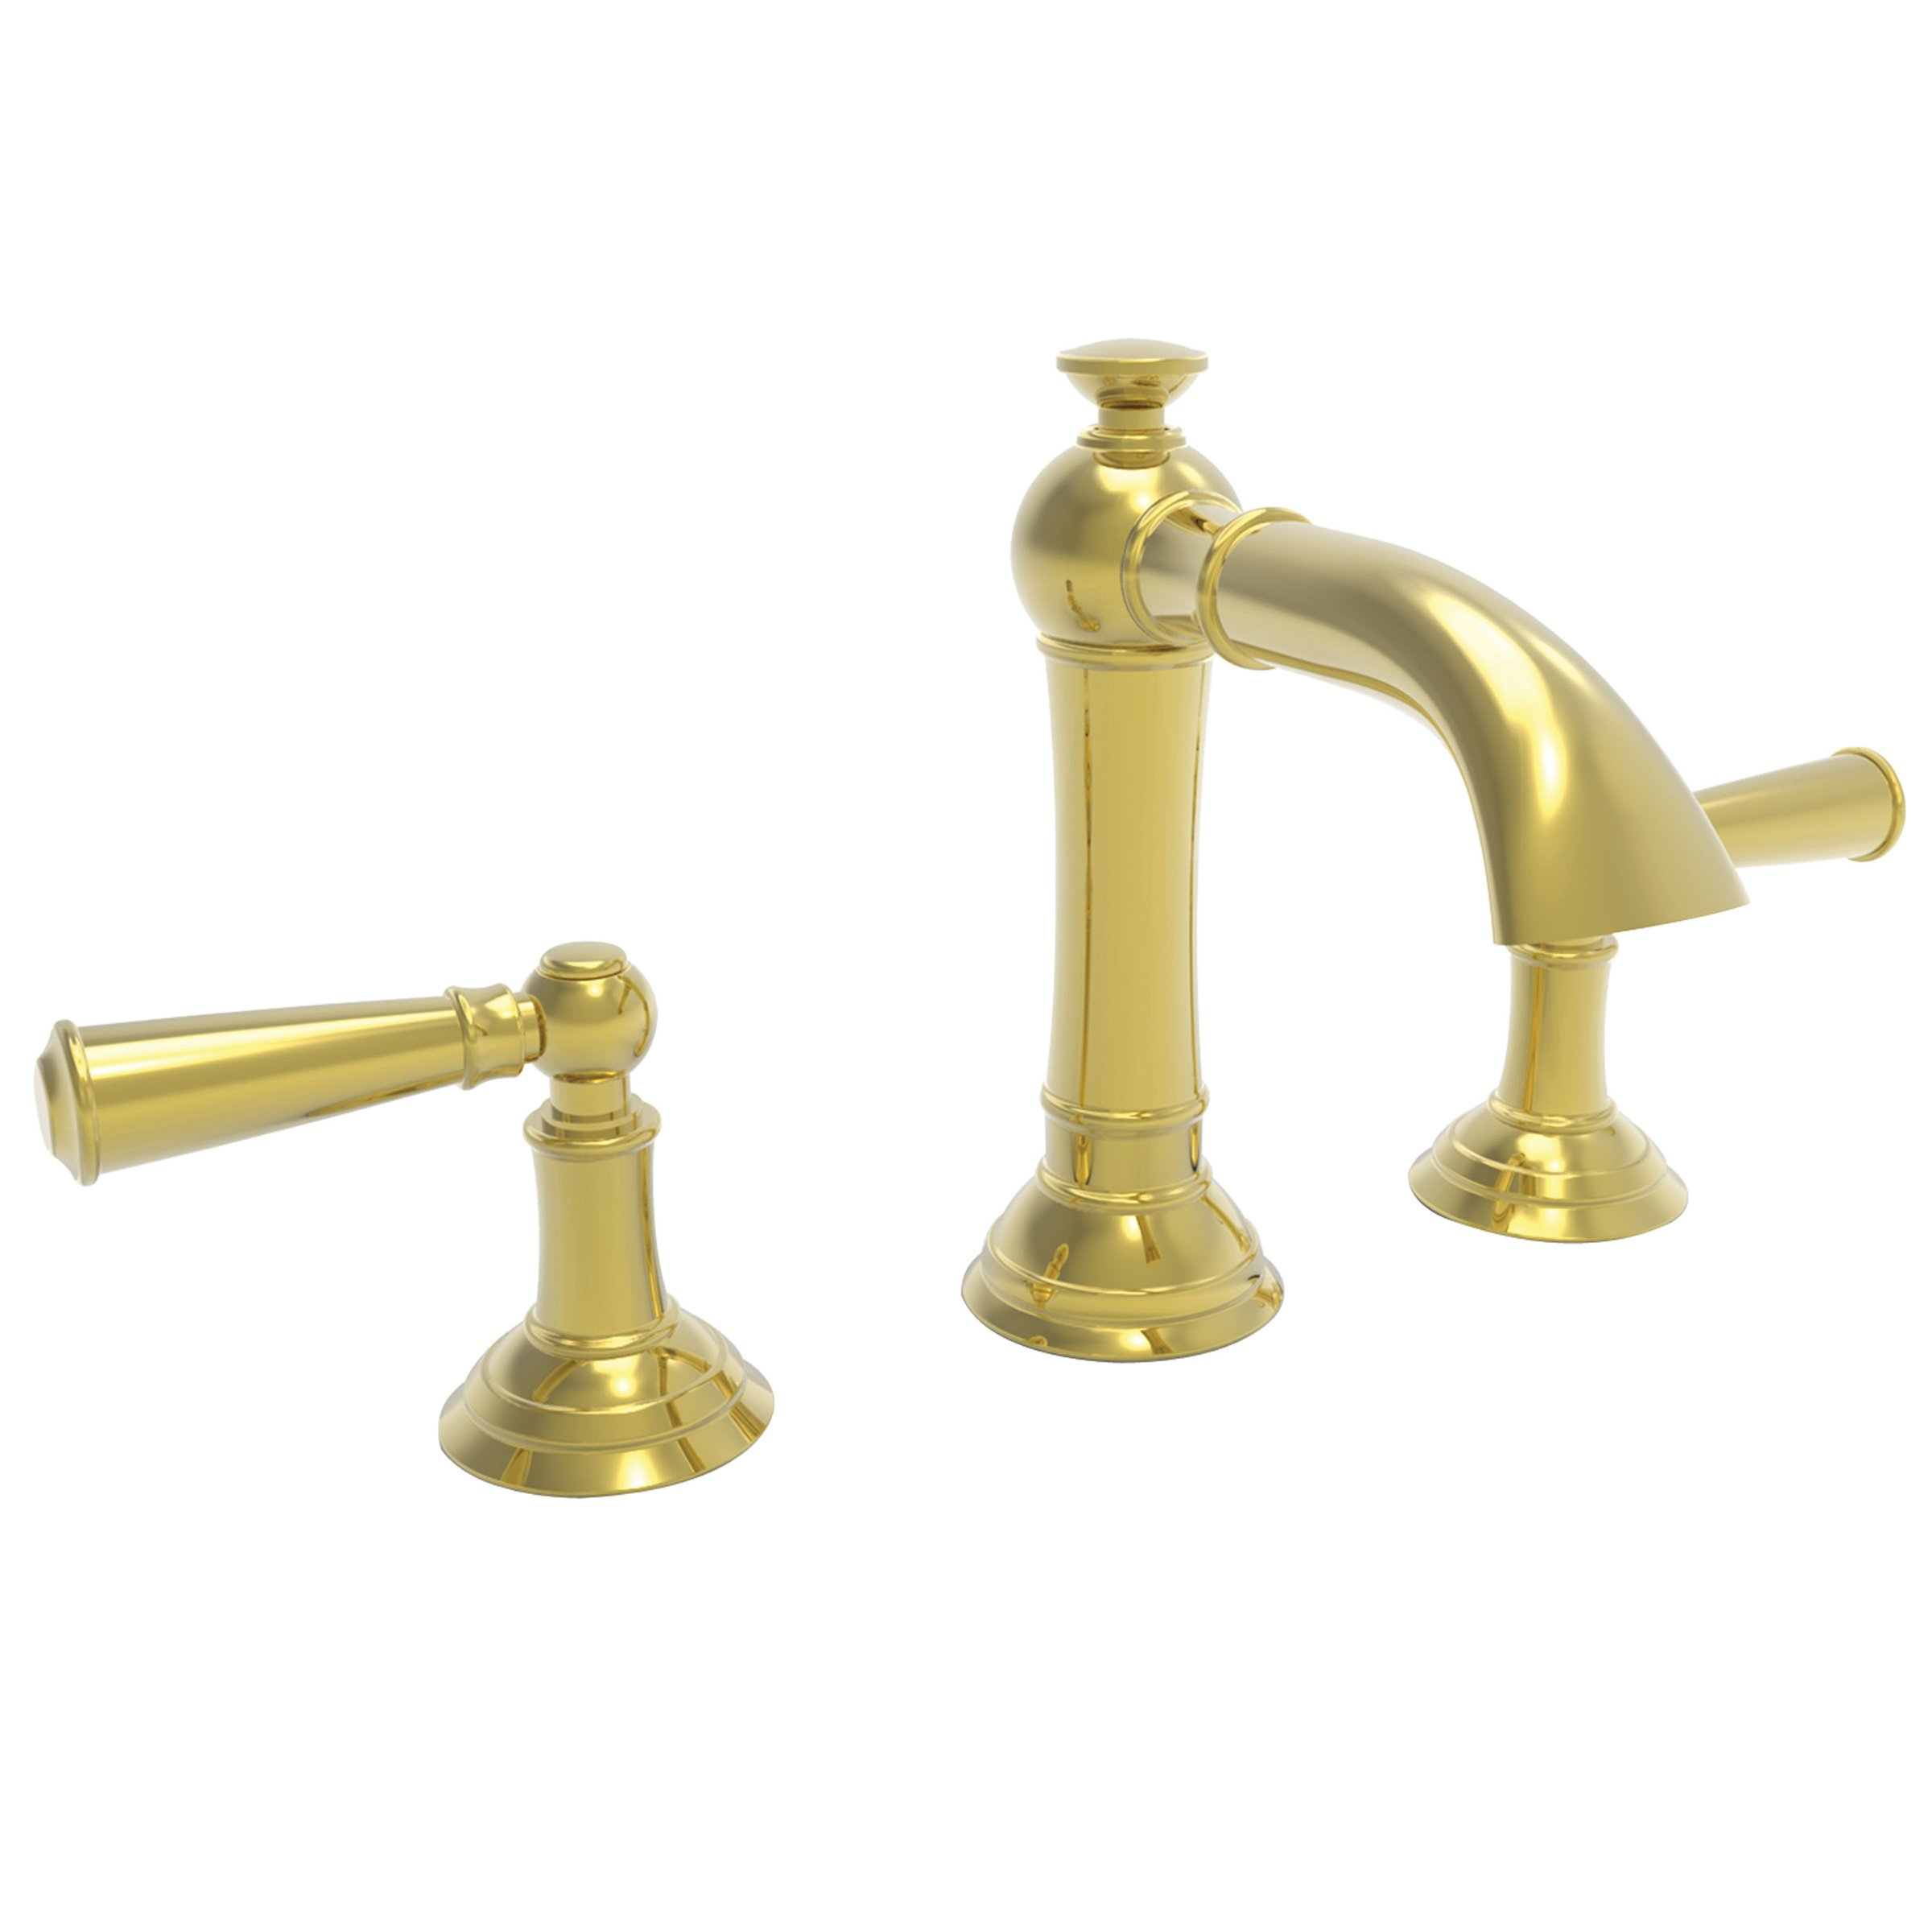 Newport Brass 2410 Widespread Lavatory Faucet Lever Handles Tall Country Base Newport Brass